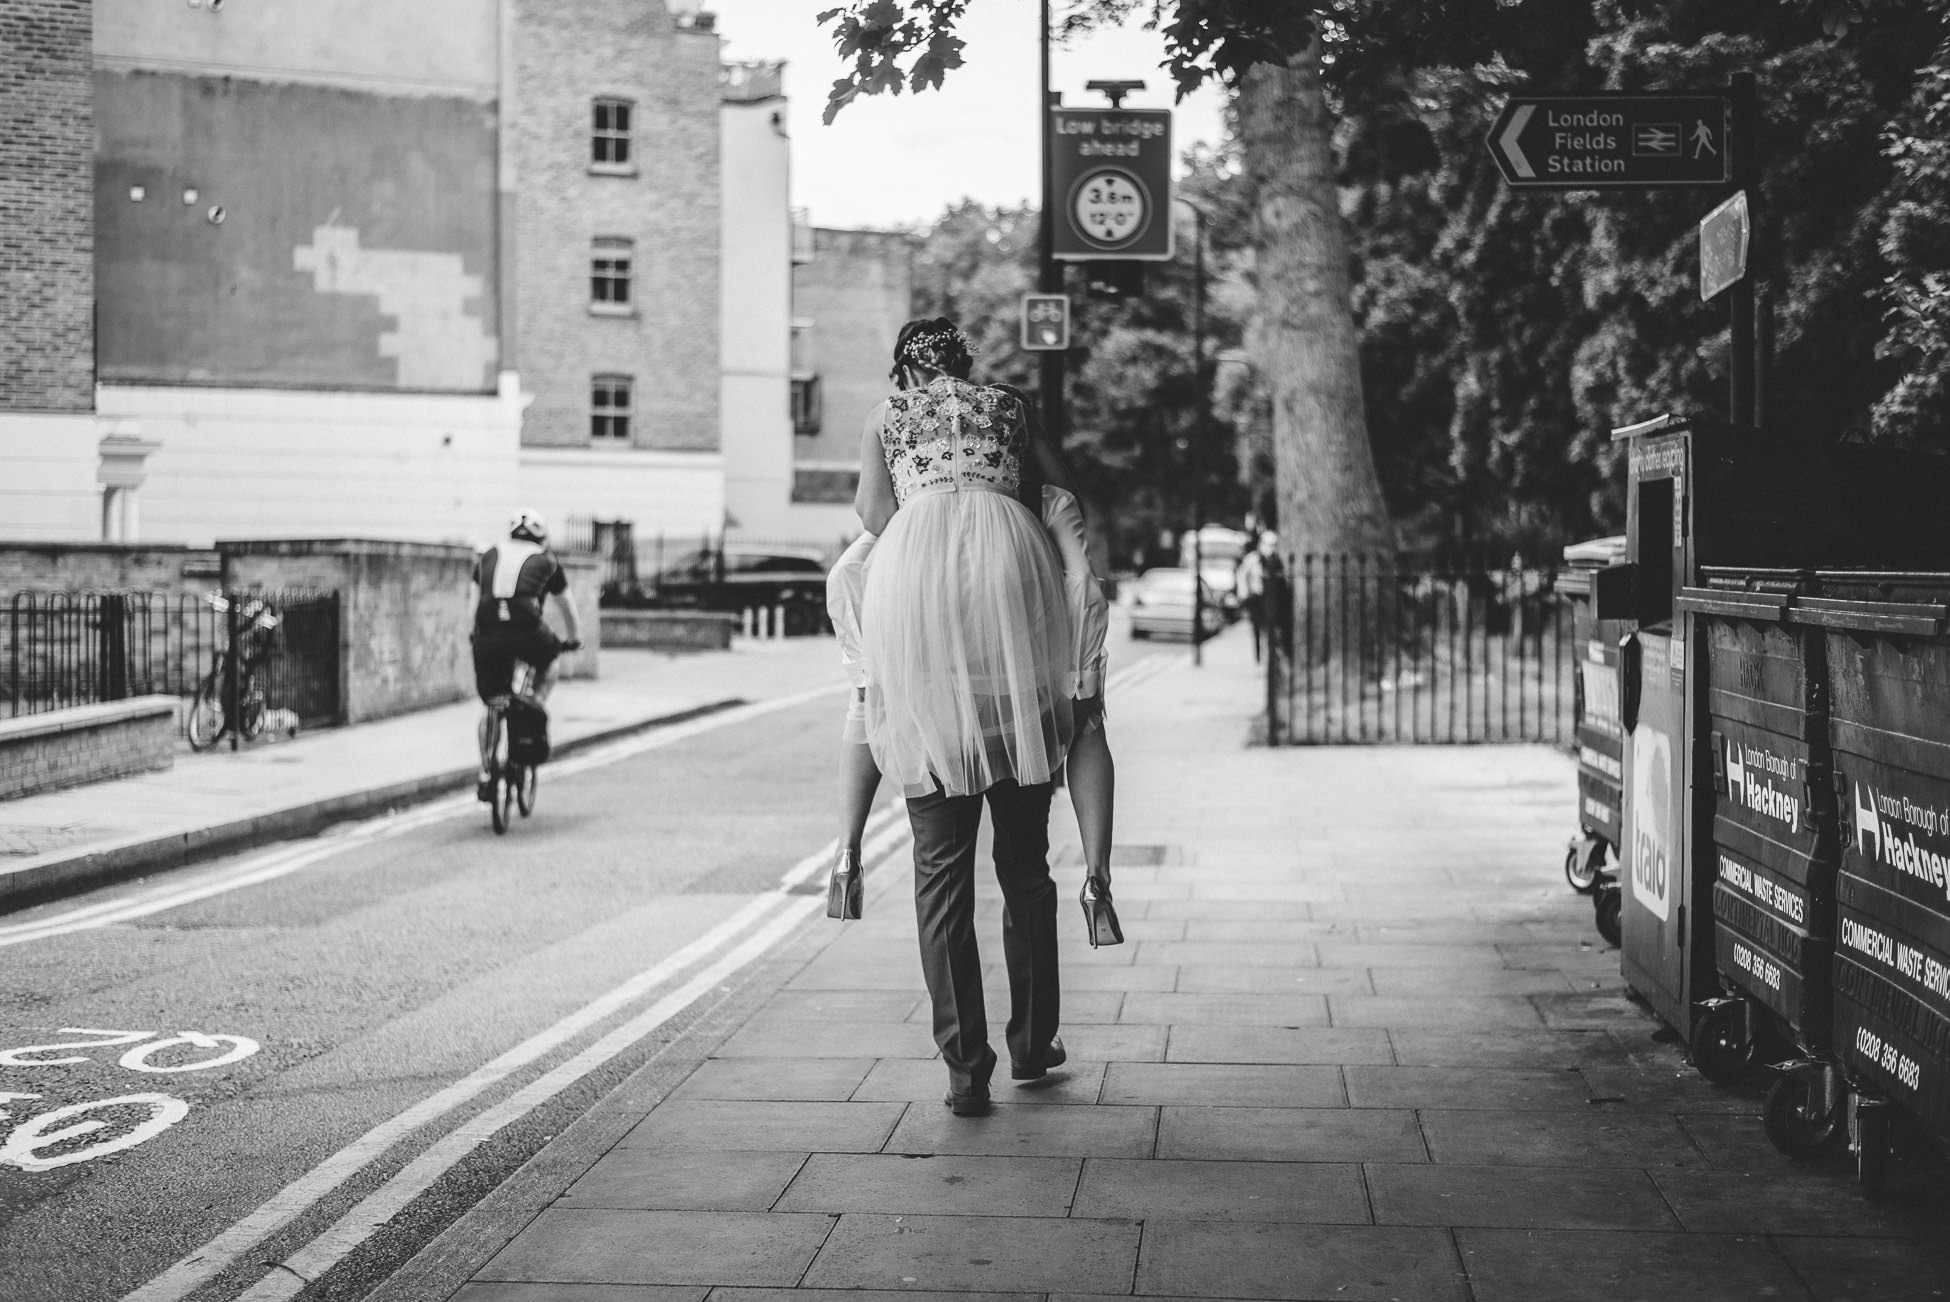 Groom gives bride a piggy back ride as they walk through London Fields Park - Urban Wedding Photography